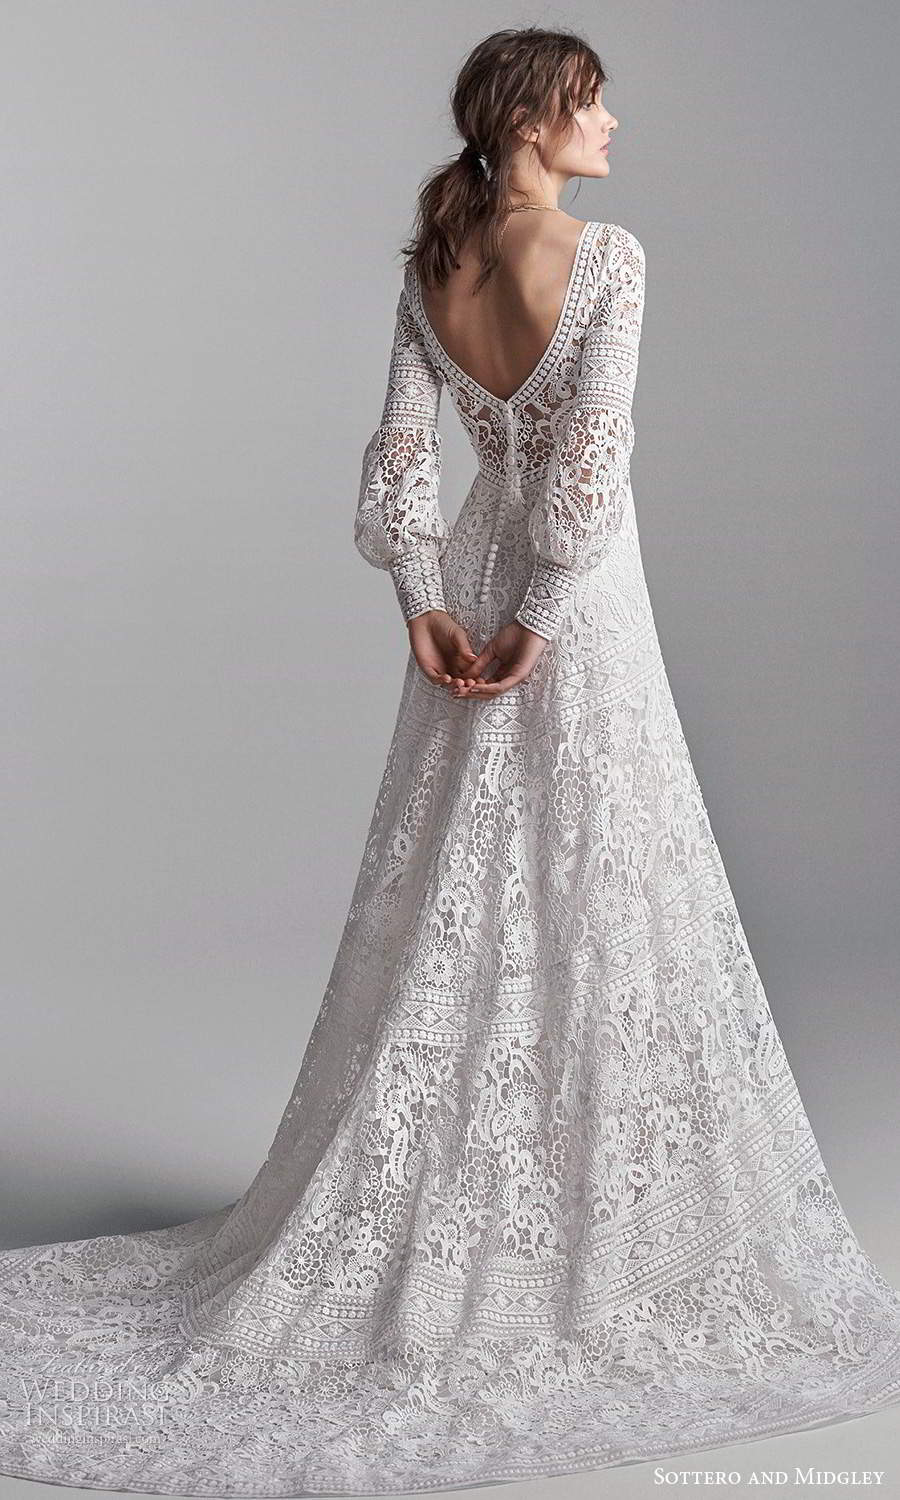 sottero midgley fall 2020 bridal long puff bishop sleeves plunging v neckline fully embellished lace a line ball gown wedding dress chapel train (11) bv